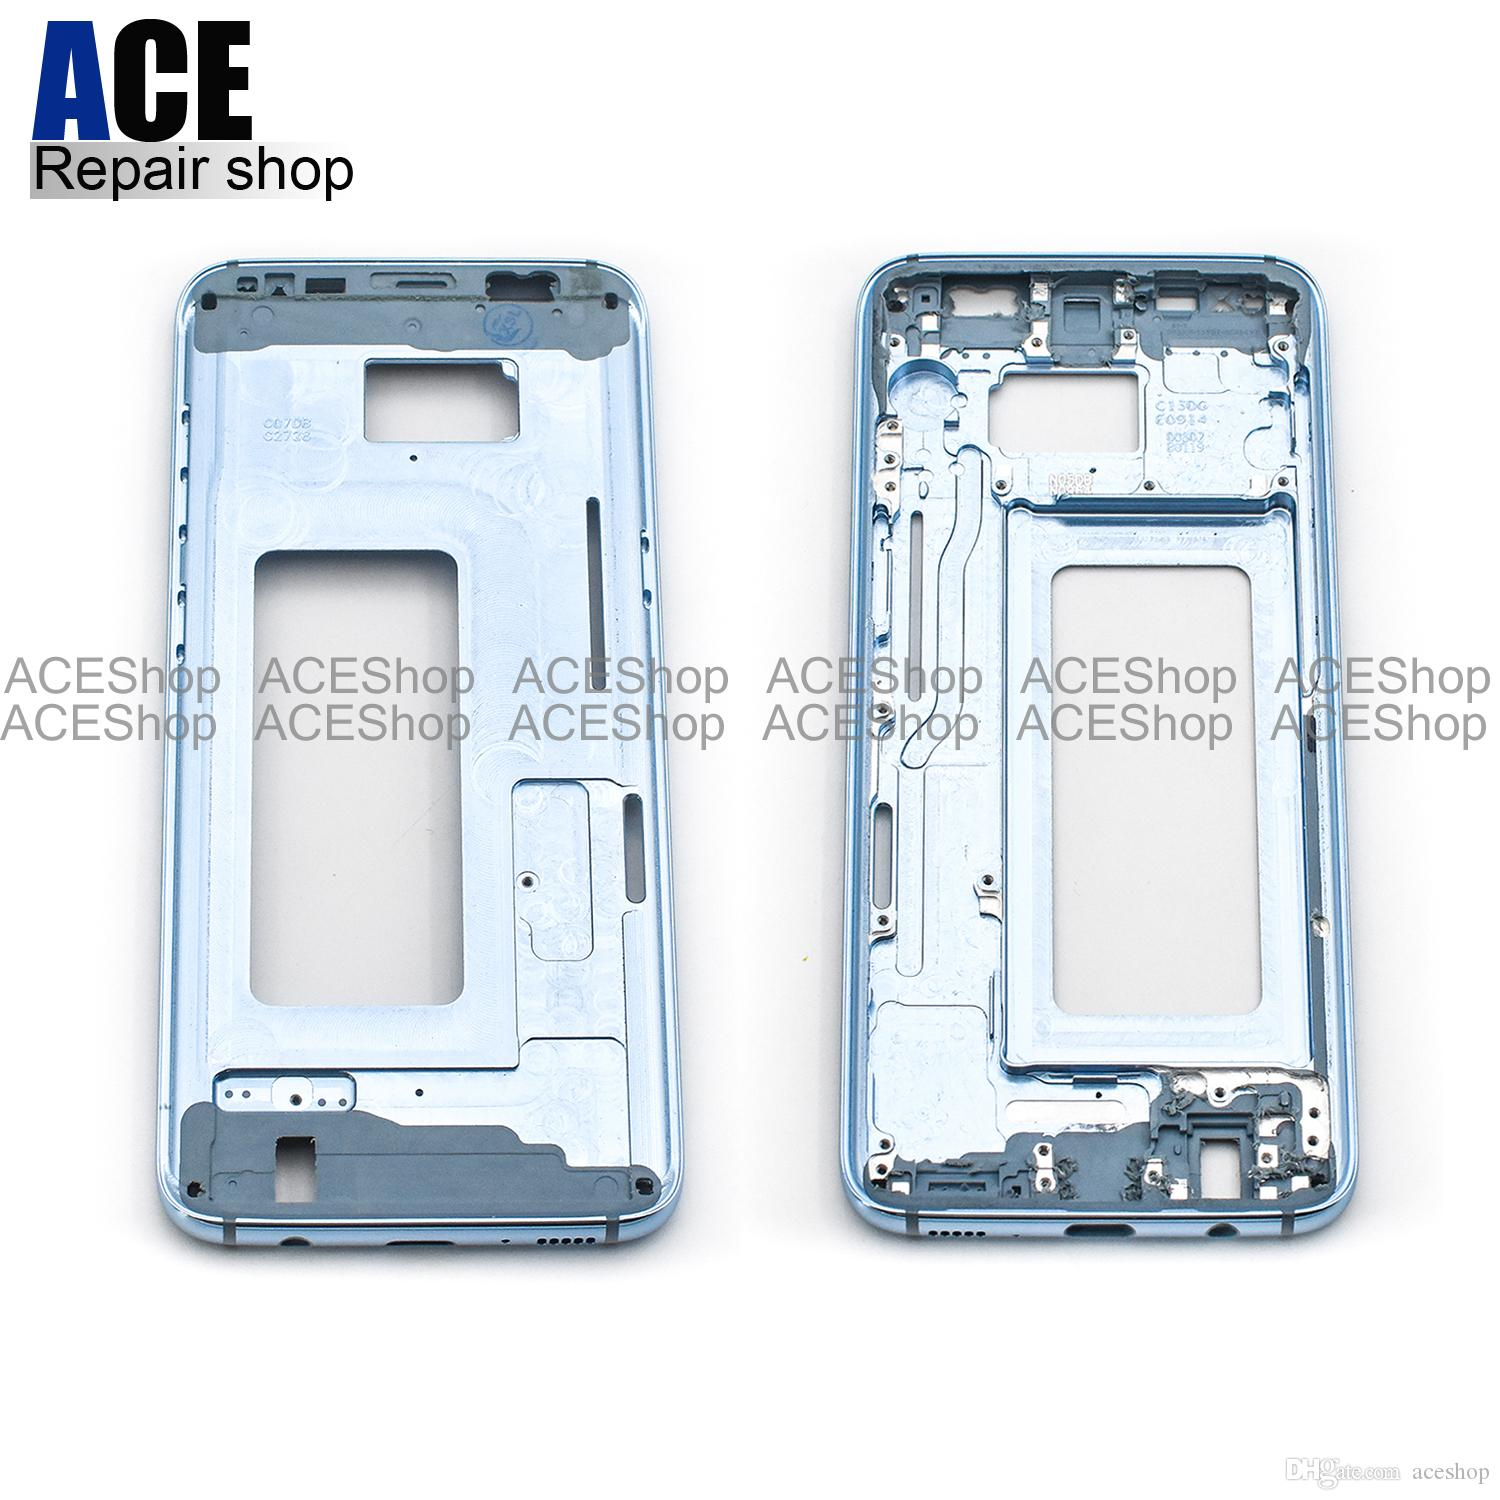 2018 Ace Oem Metal Middle Bezel Frame Case For Samsung Galaxy S8 G950 G950p G950f Housing With Side Buttons Free Dhl From Aceshop $14 57